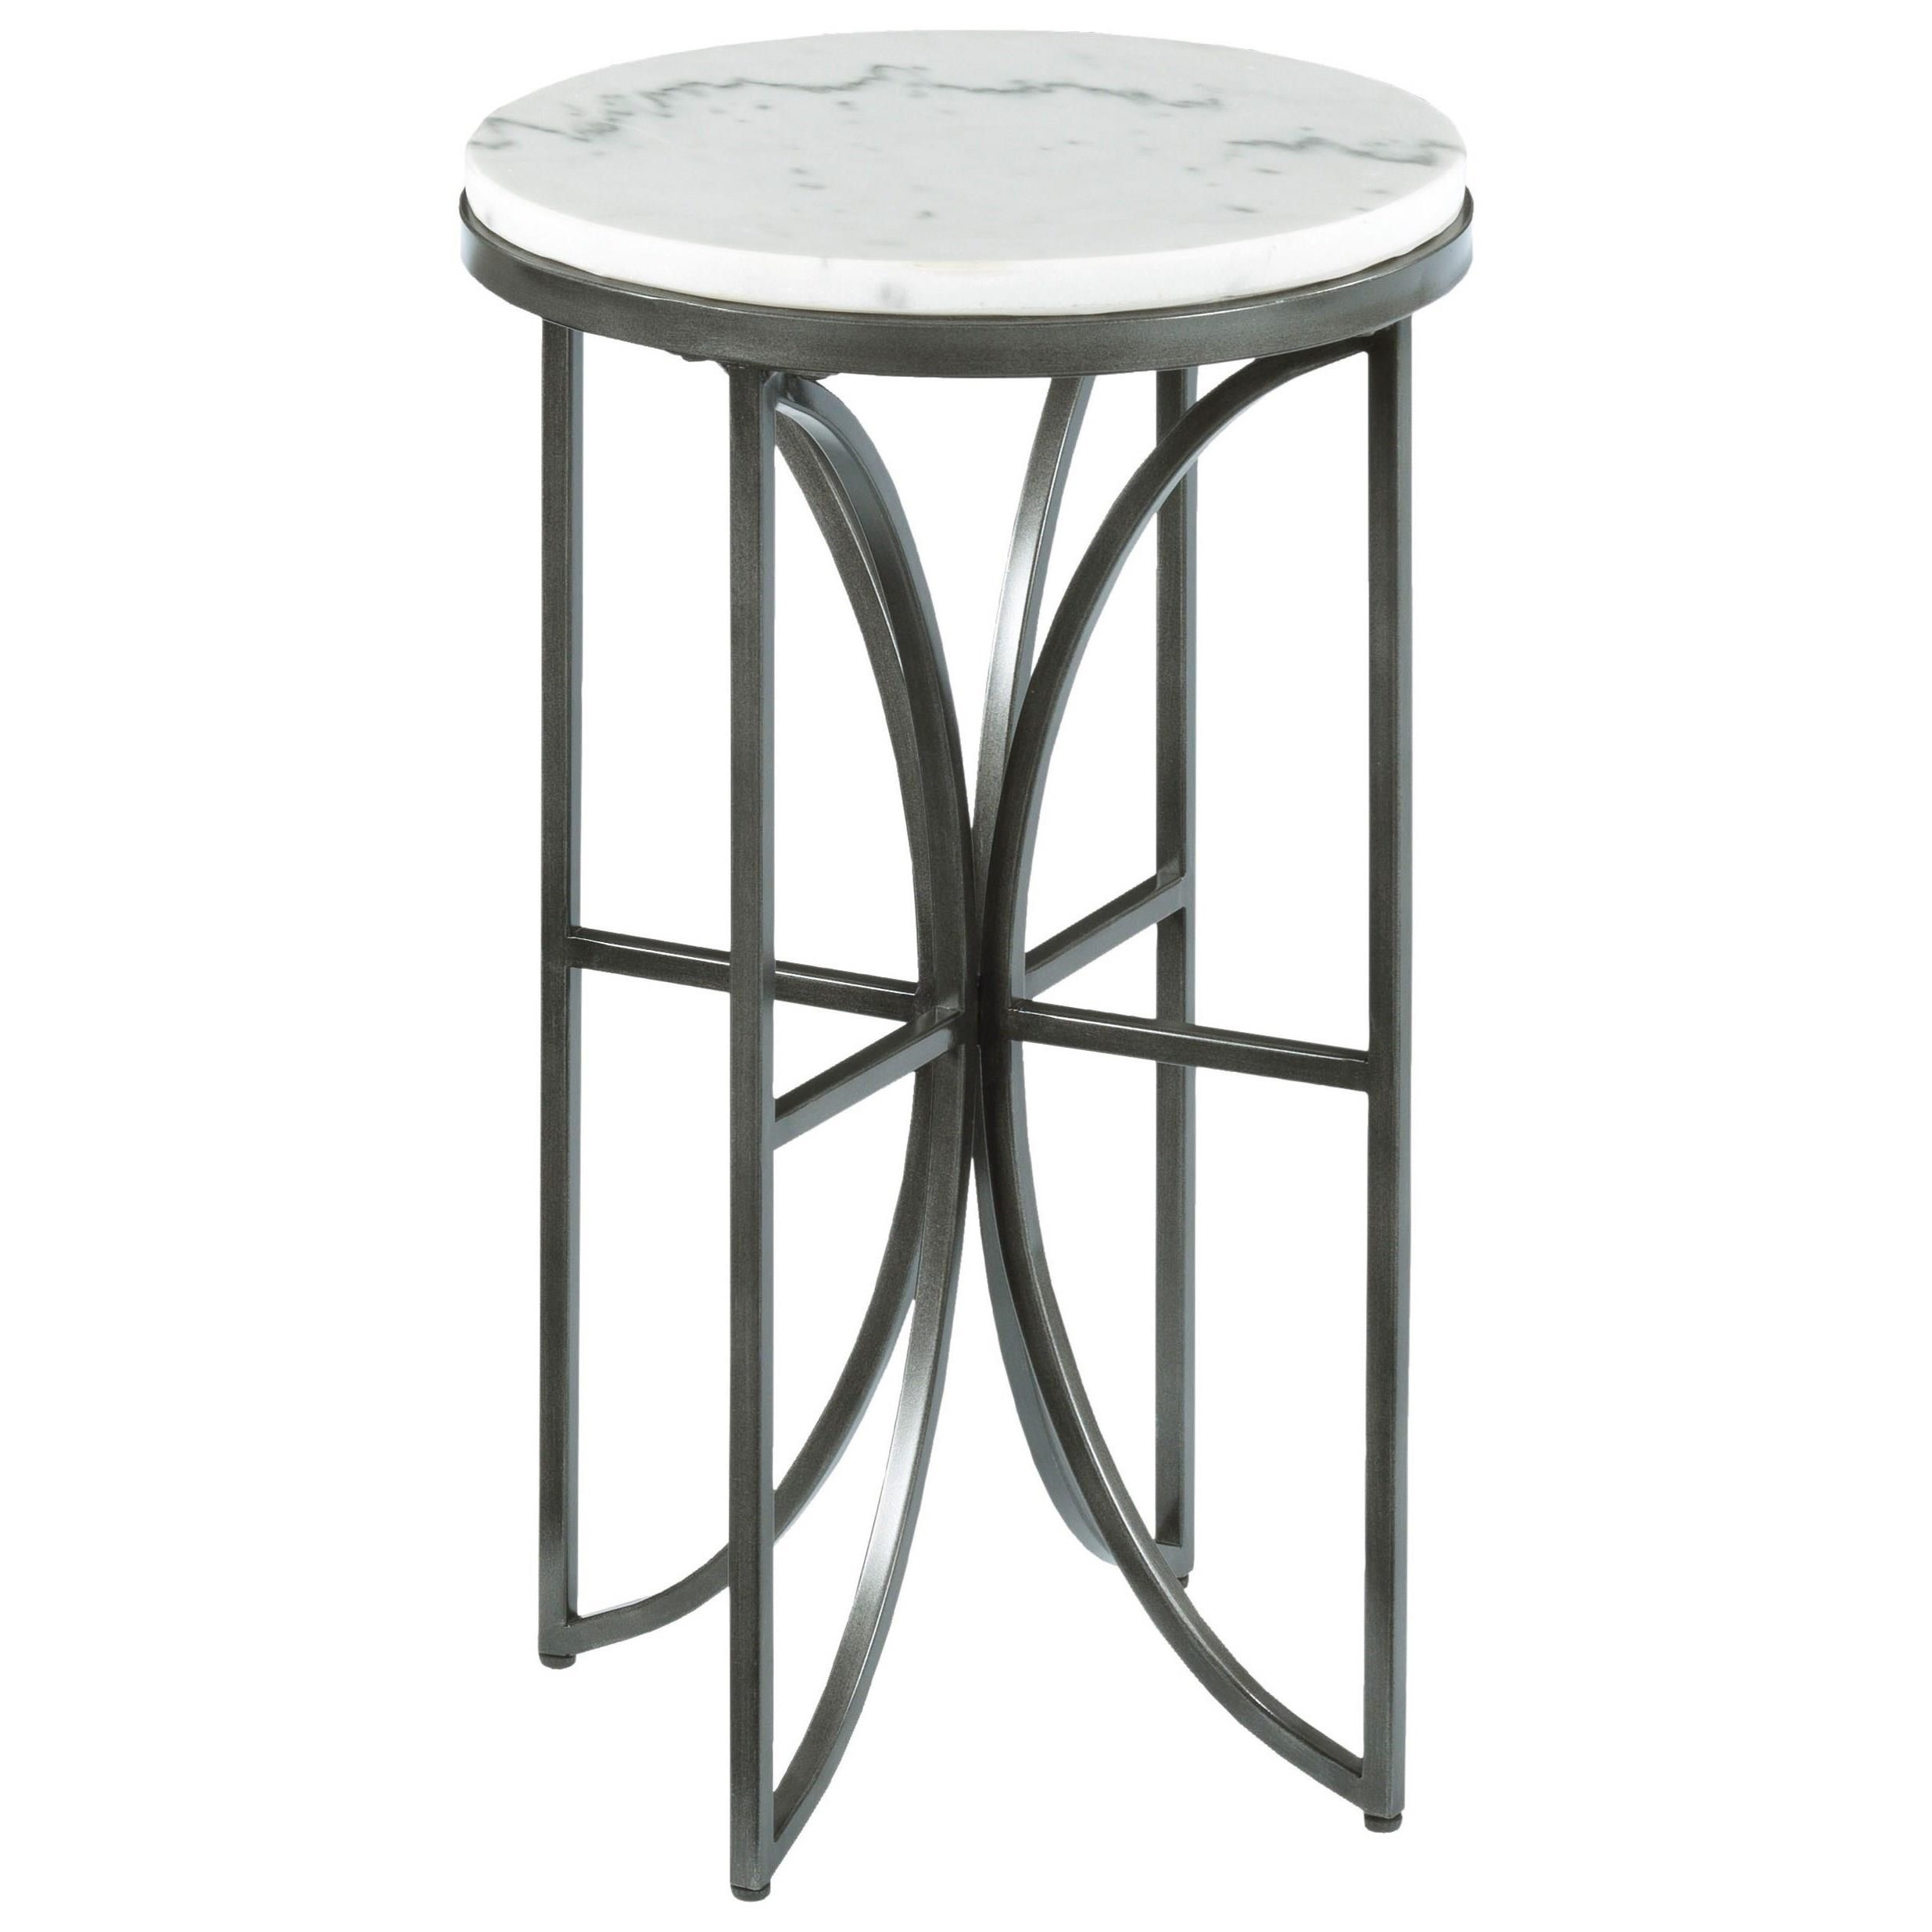 small round accent table with marble top hammary wolf and products color impact white screen porch furniture wood trestle dining stand cream coffee ethan allen room sets glass